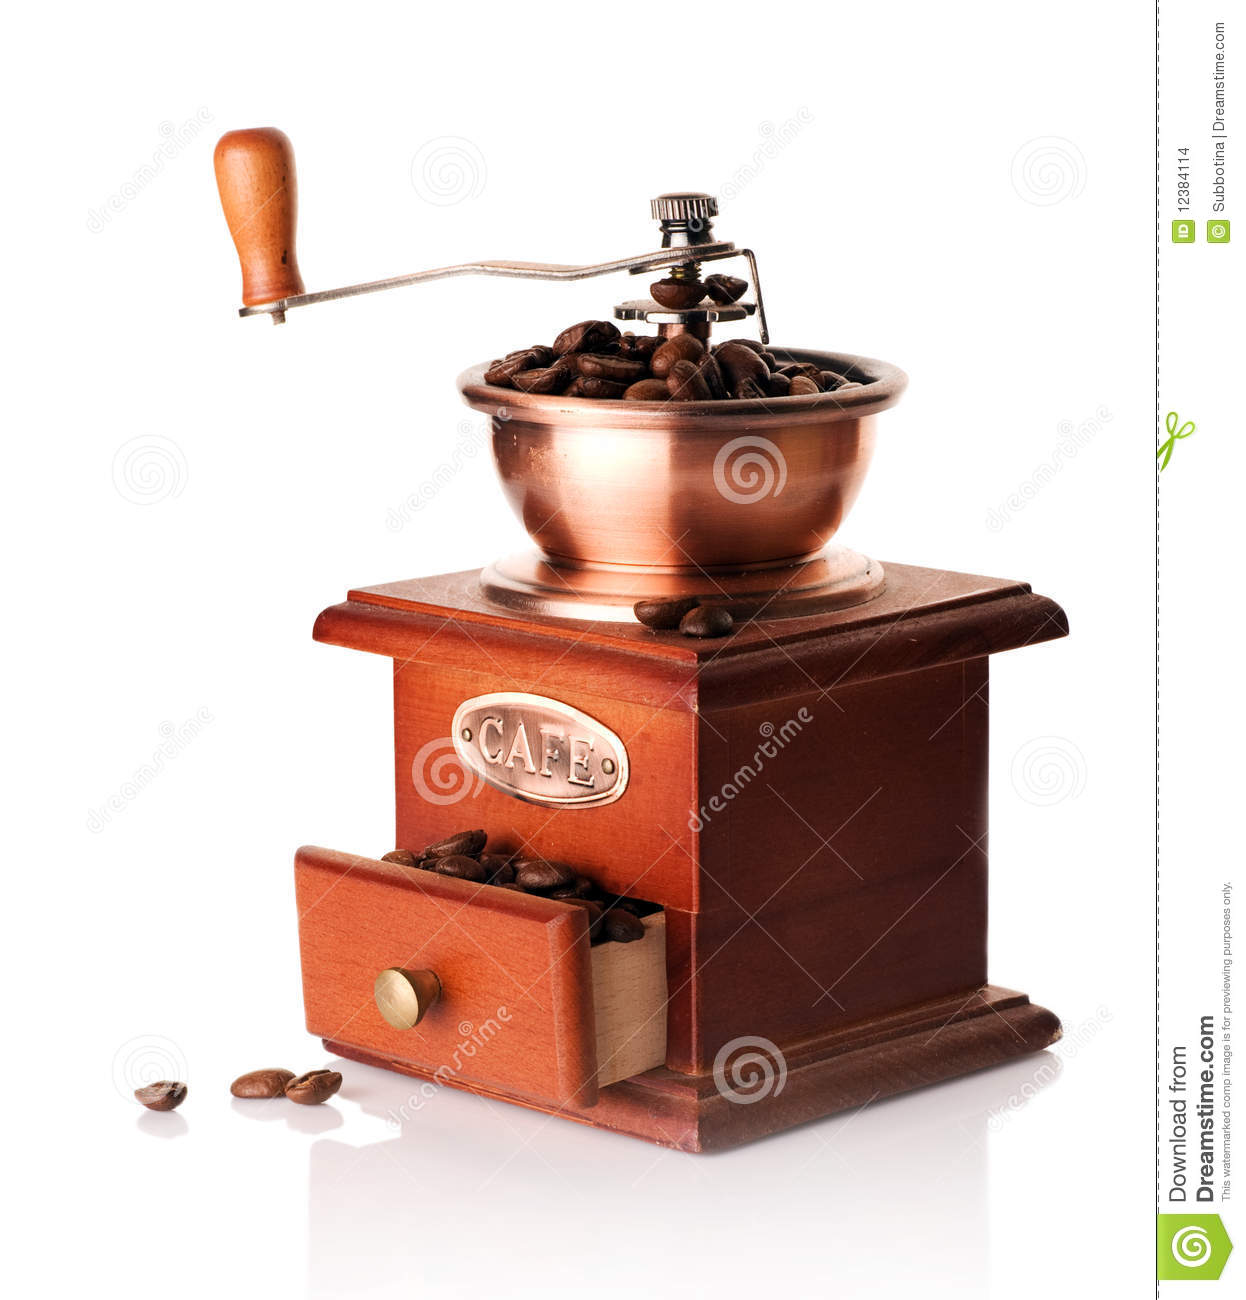 Coffee Grinder Drawing ~ Coffee grinder manual image outline stock illustration